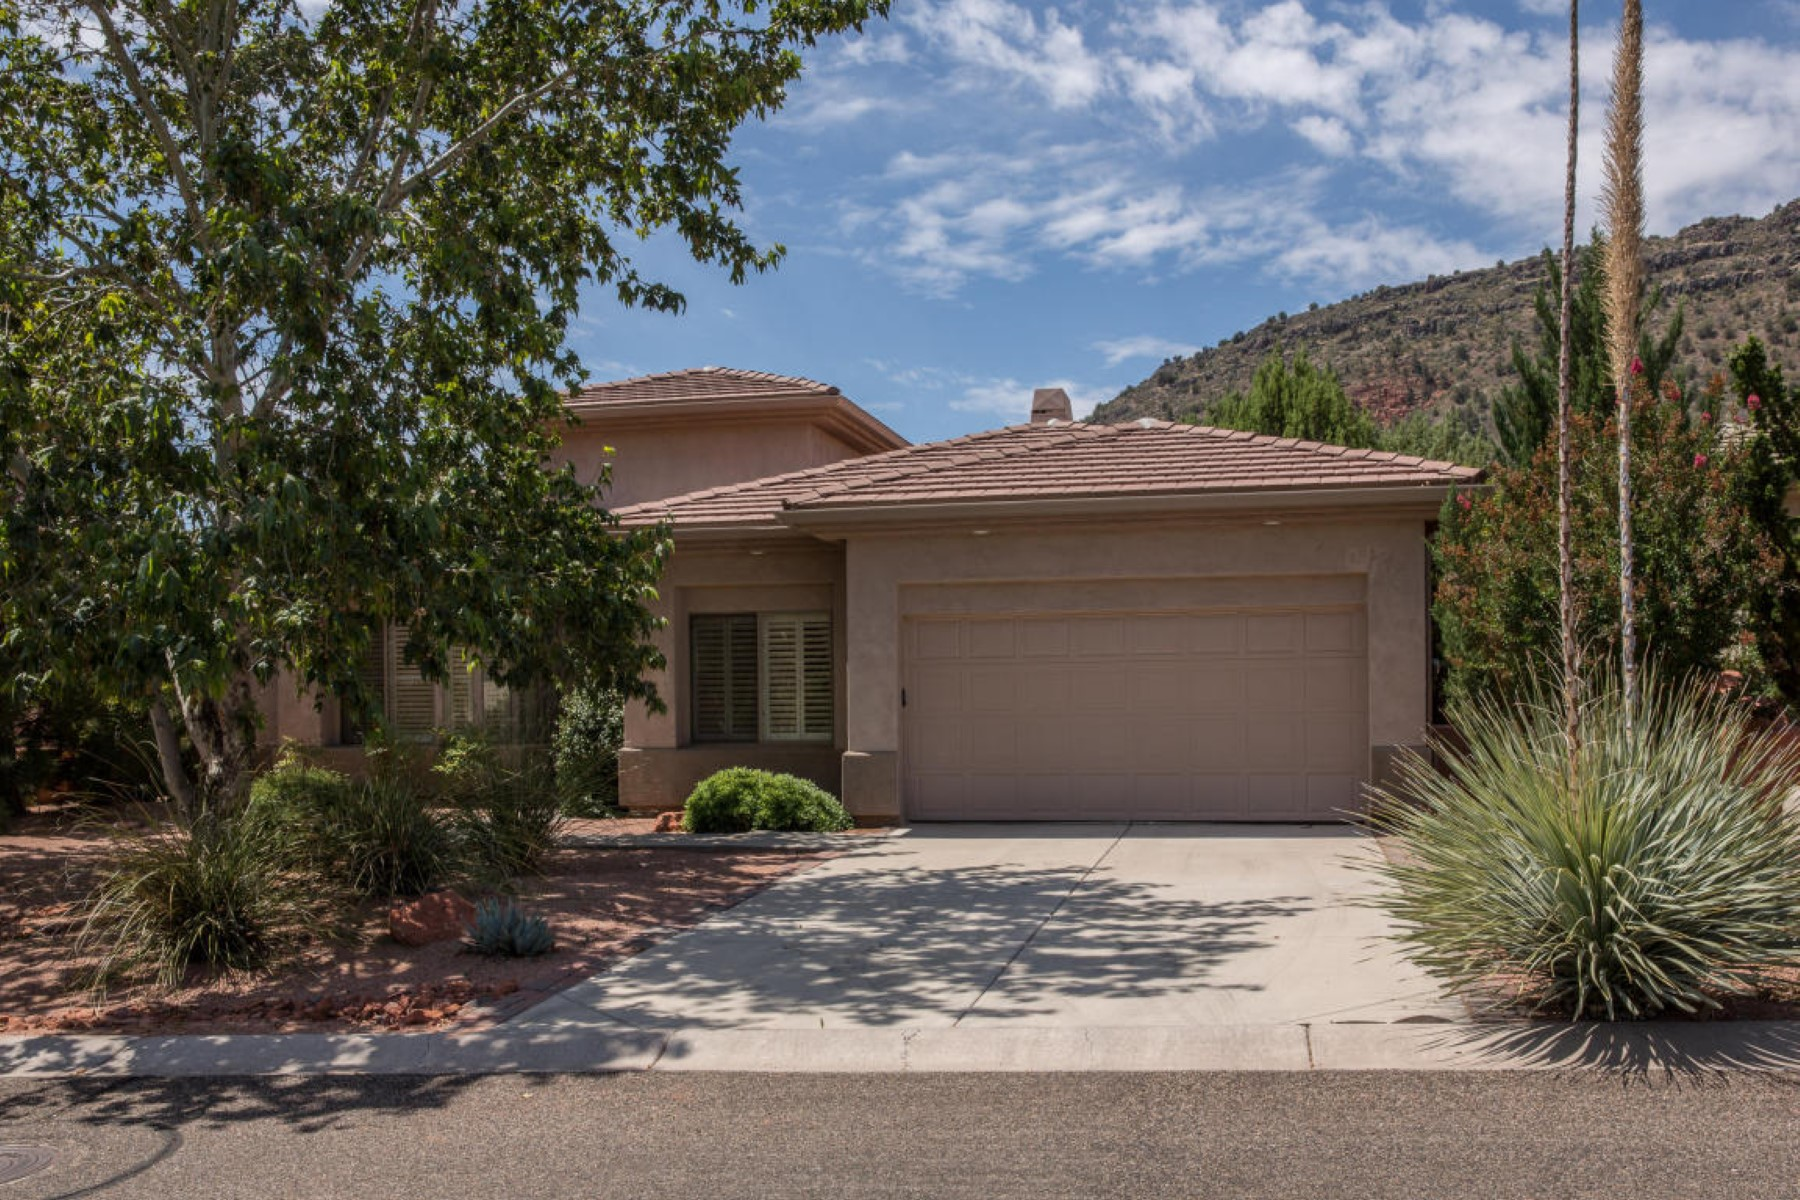 一戸建て のために 売買 アット This spacious elegant home is in a great location in the Sedona AZ Golf Resort. 1420 Crown Ridge RD Sedona, アリゾナ 86351 アメリカ合衆国